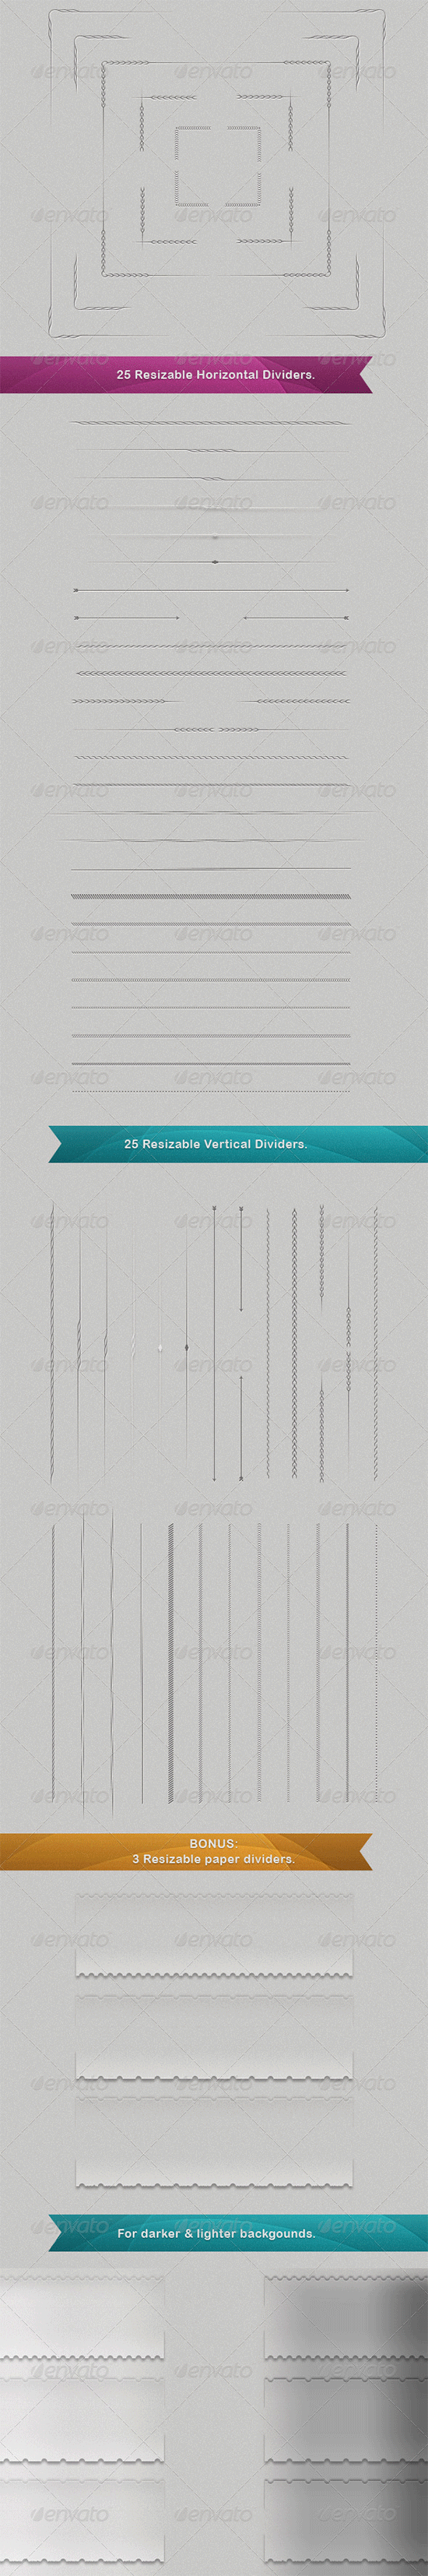 50 vector resizable dividers